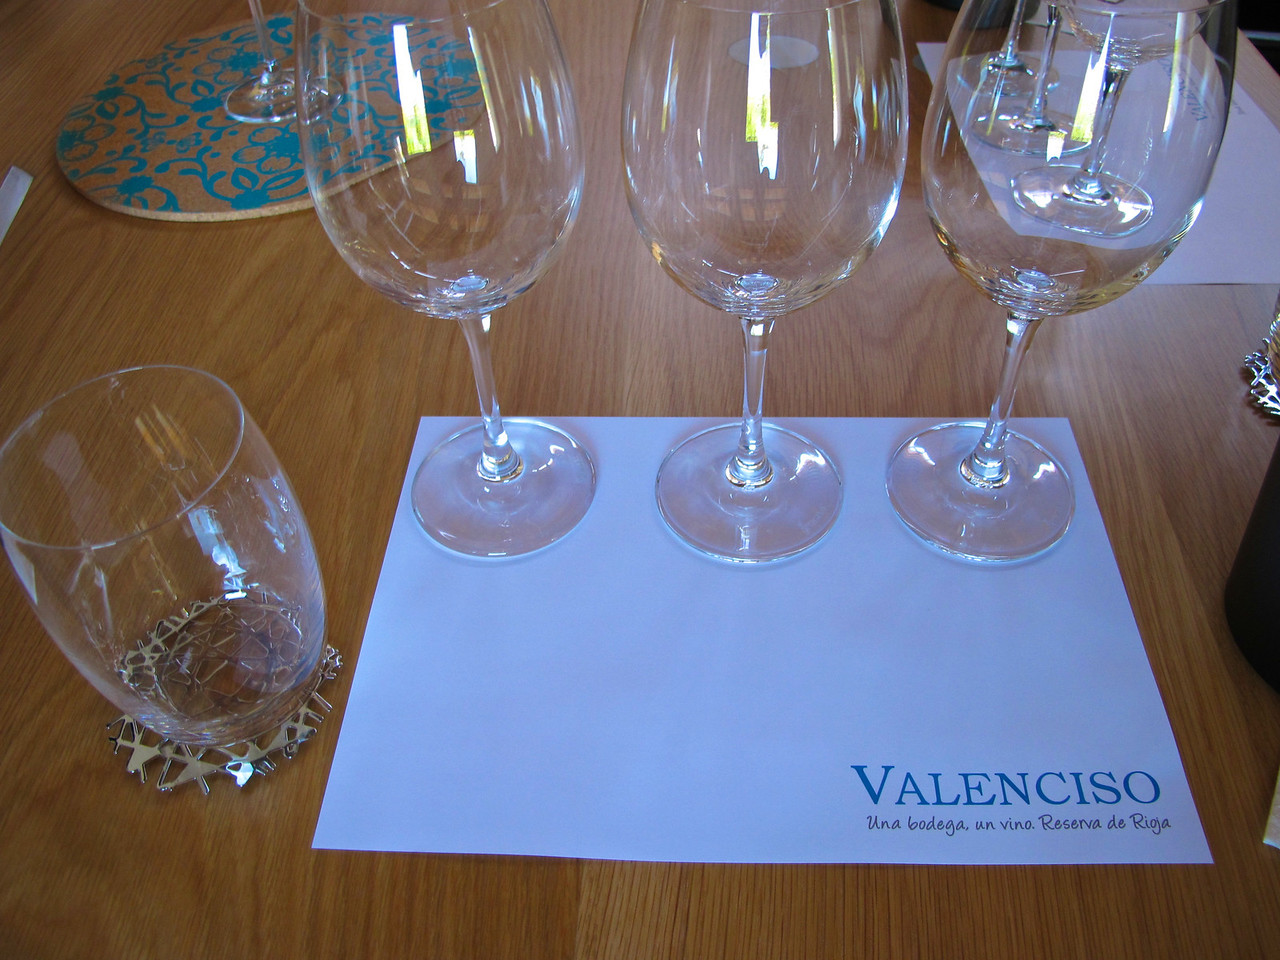 "Valenciso makes only wine per harvest which is always a red Reserva.  Valencisco calls it ""one cellar, one wine, one brand.""  Valenciso red Reserva is 100% tempranillo, aged in new French oak."